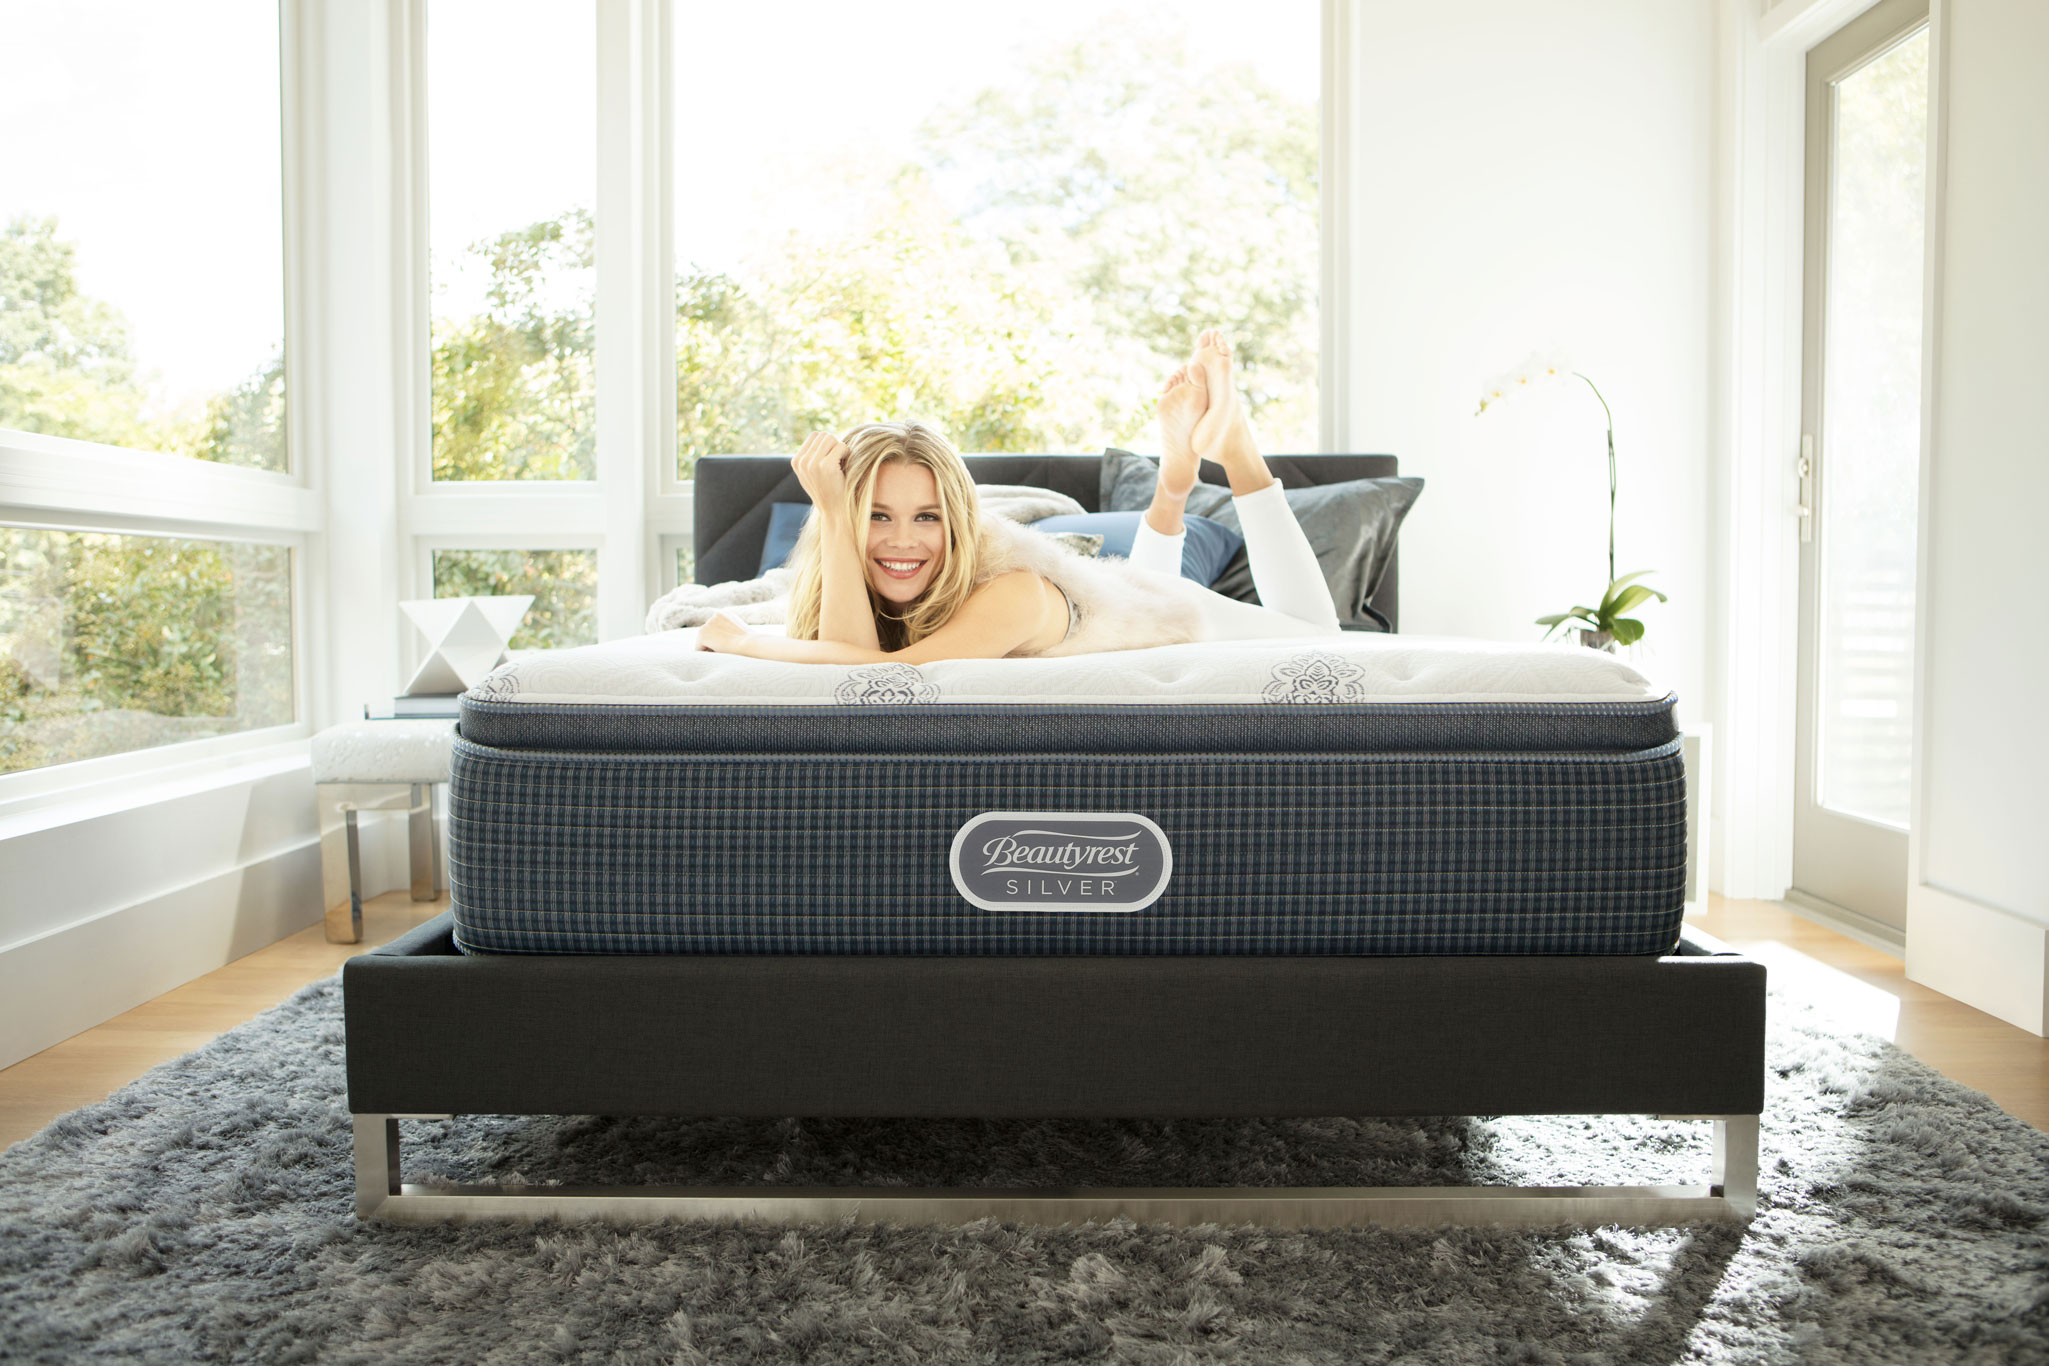 Woman smiling at camera on Beautyrest mattress